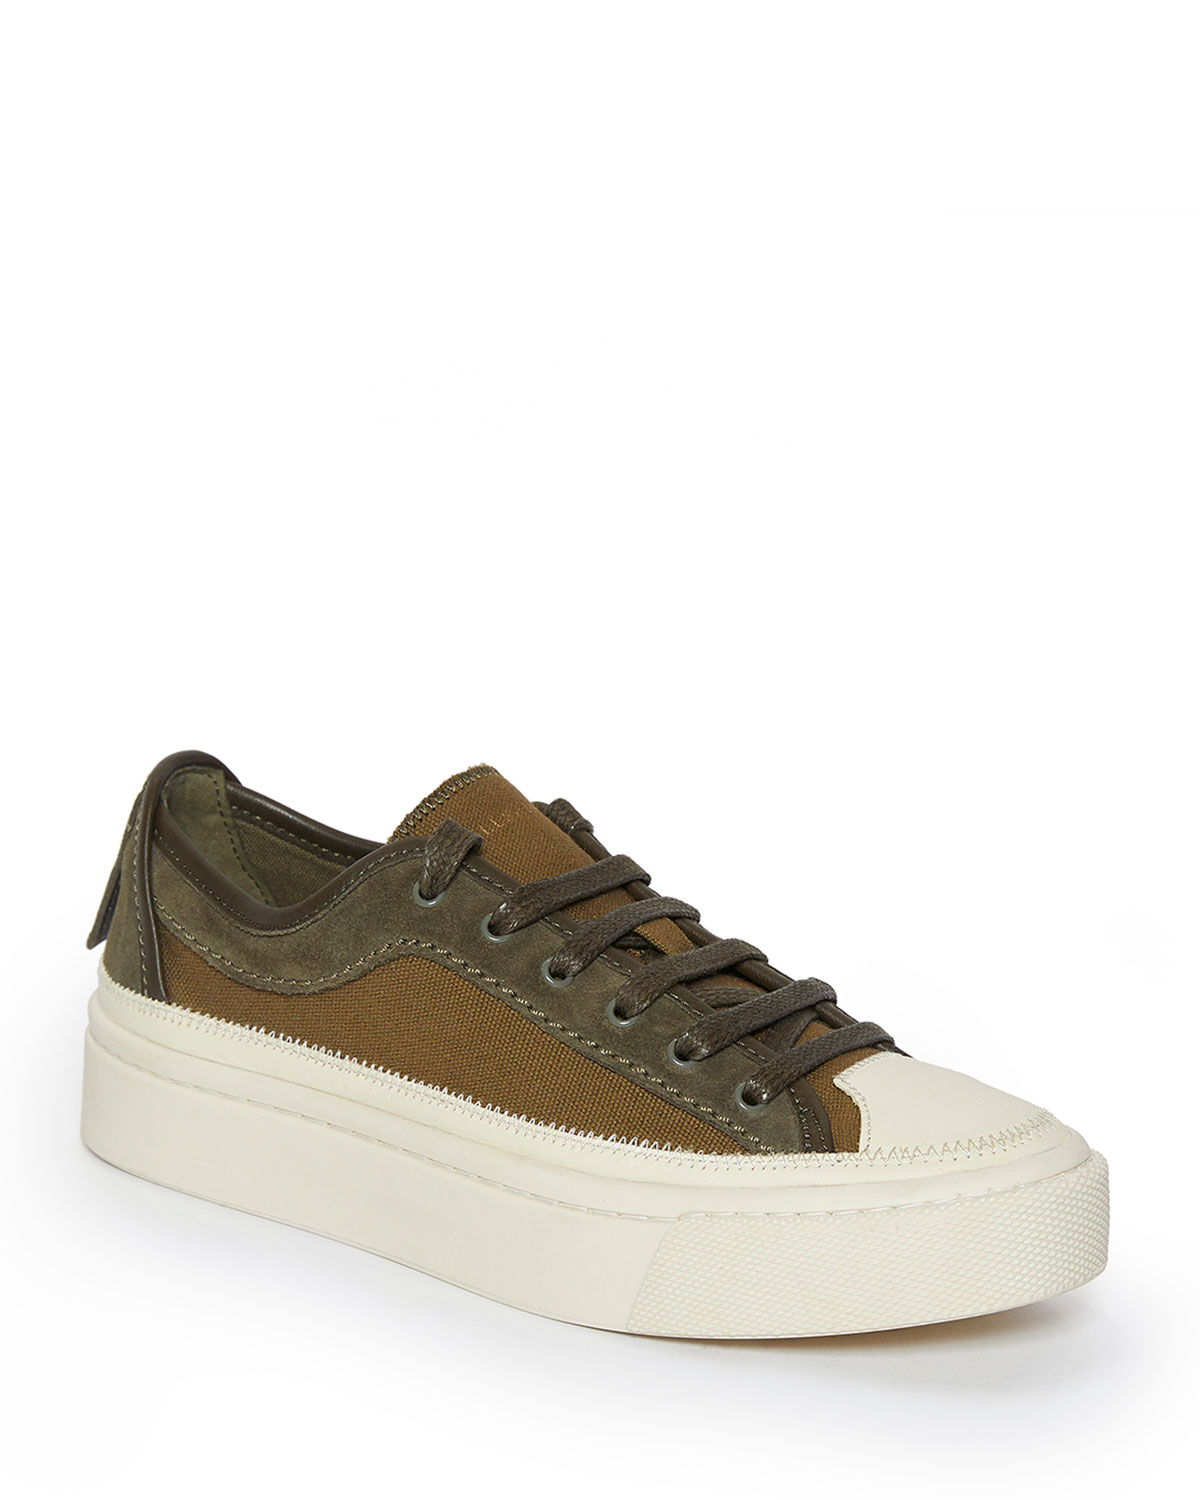 Allsaints Platforms MILLA LOW-TOP MIXED LEATHER SNEAKERS